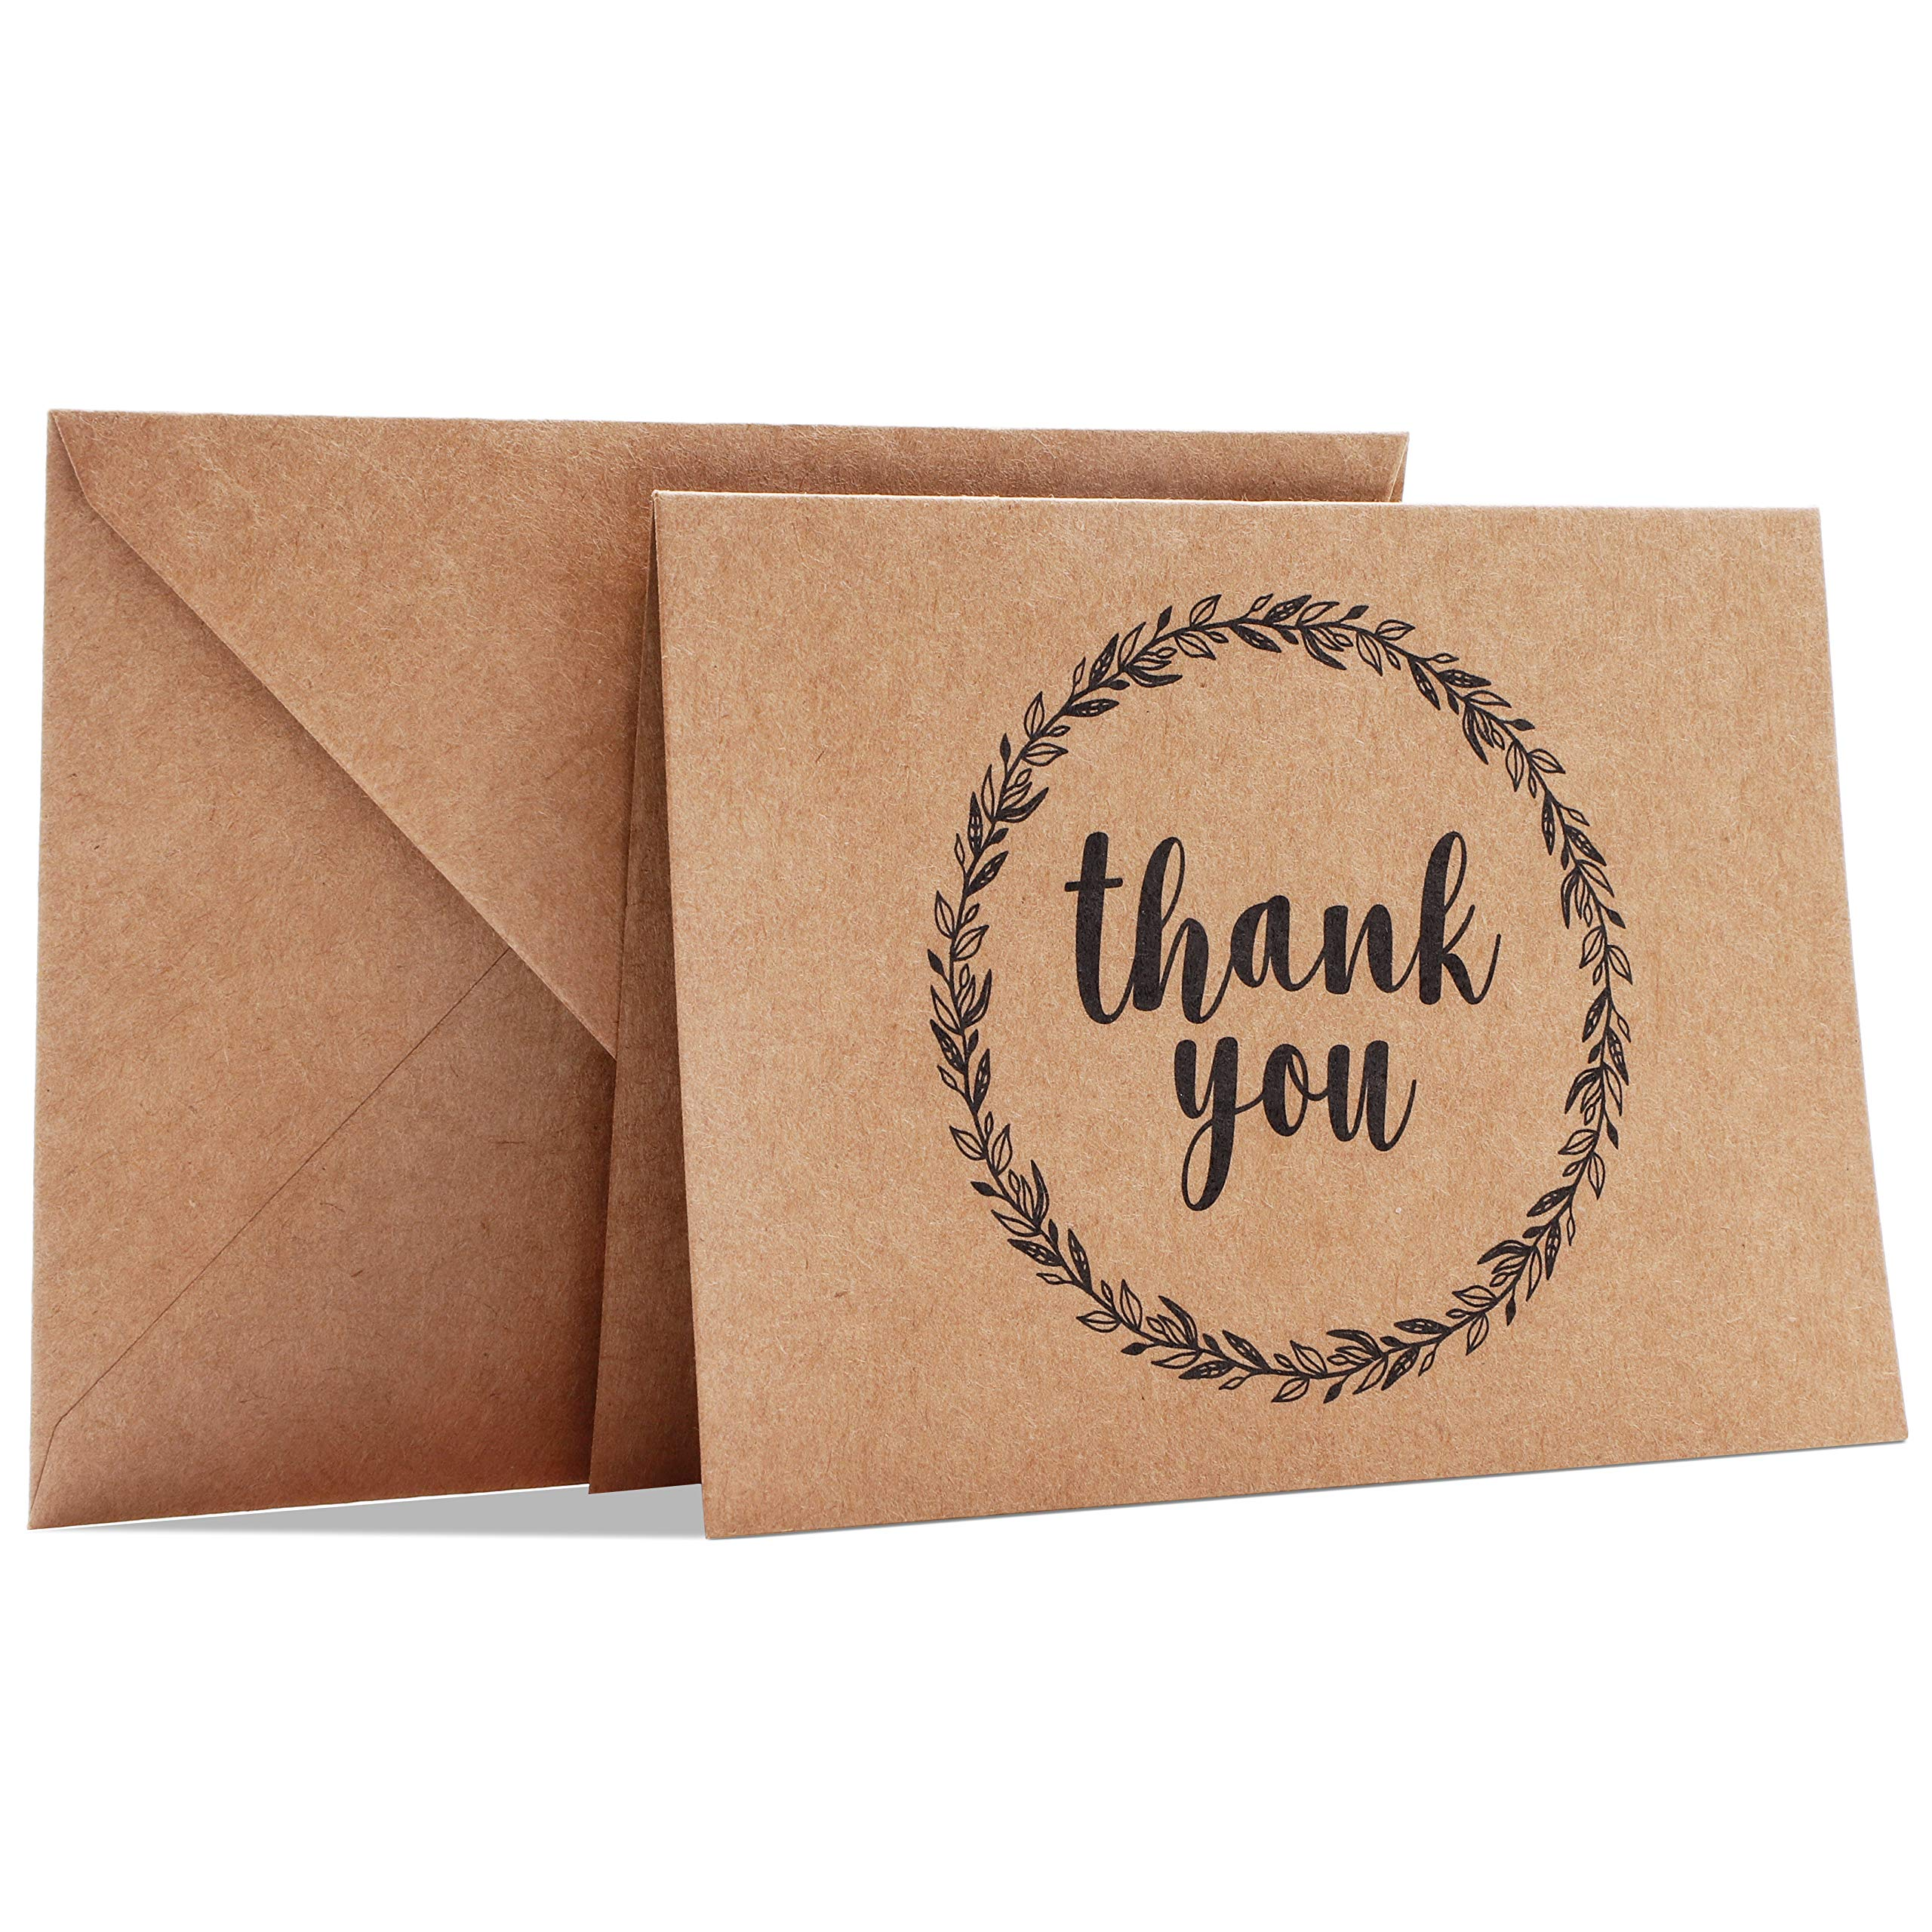 Best Paper Greetings 120-Pack Mini Kraft Thank You Note Cards Bulk Box Set for All Occasion, Wedding, Baby and Bridal Shower, Envelopes Included, 3.5 x 5 Inches by Best Paper Greetings